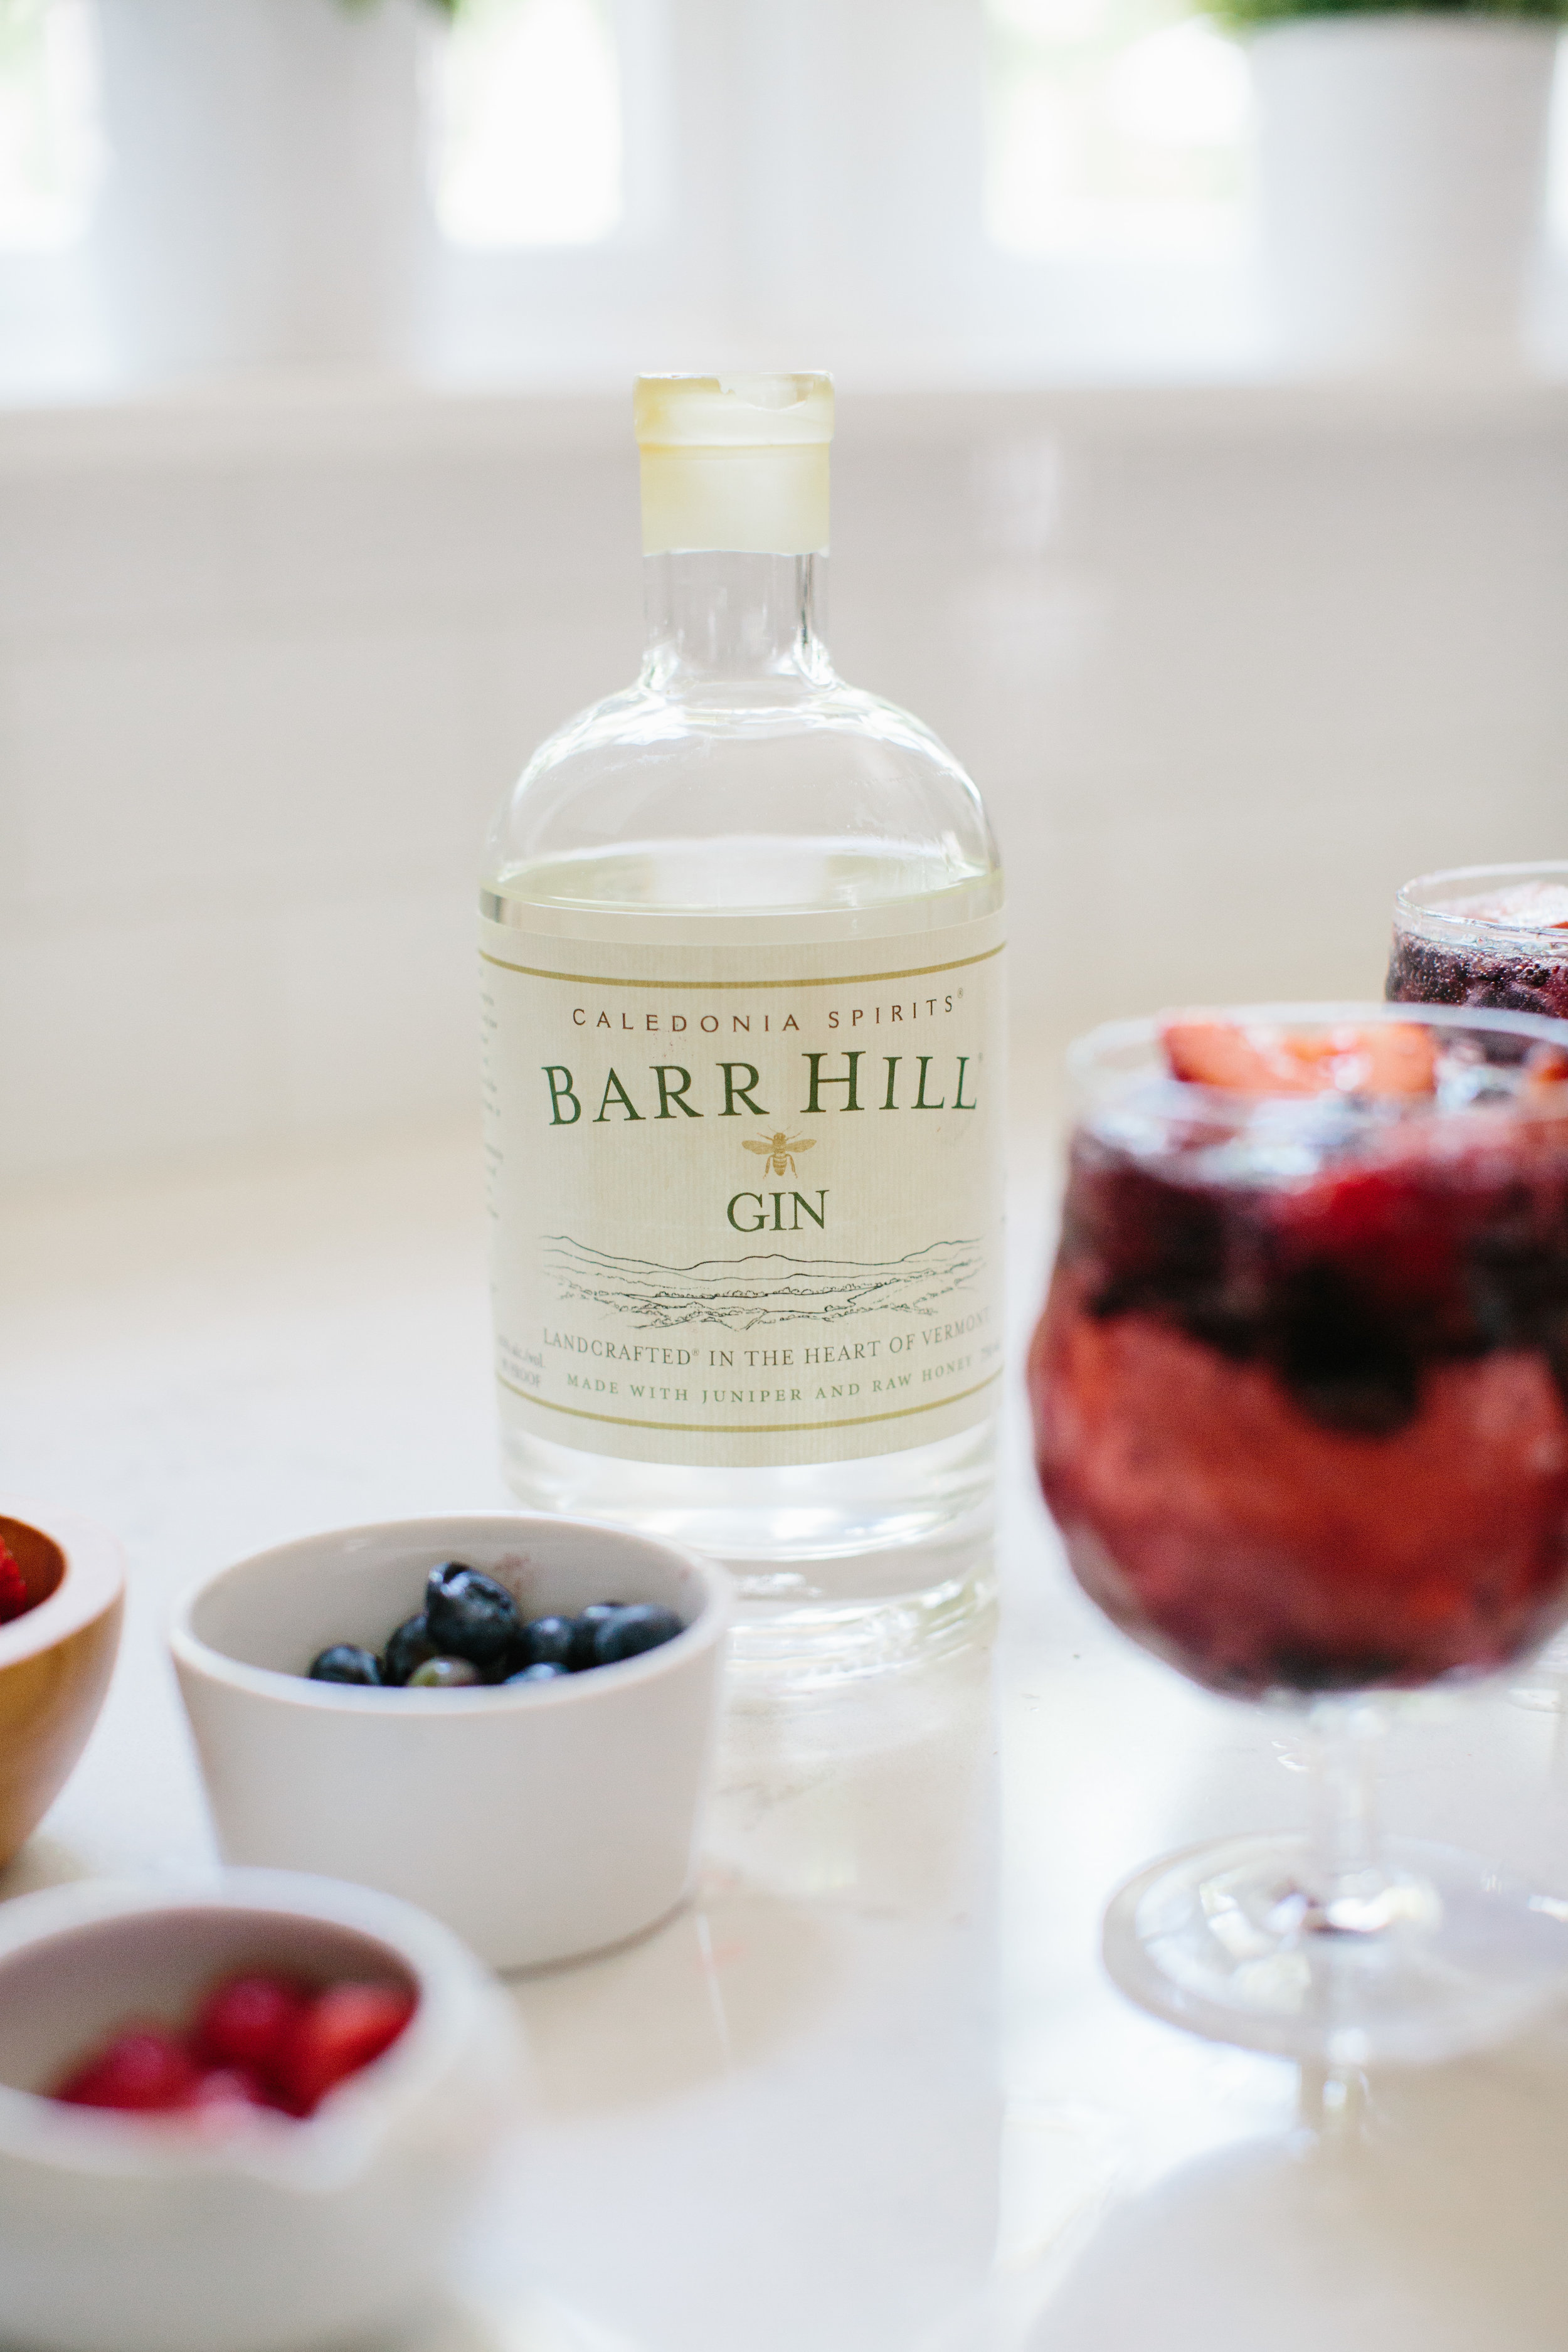 Summer Gin and Tonic Barr Hill Recipe Mixed Berry Cocktail by Abby Capalbo | Photography: Erin McGinn